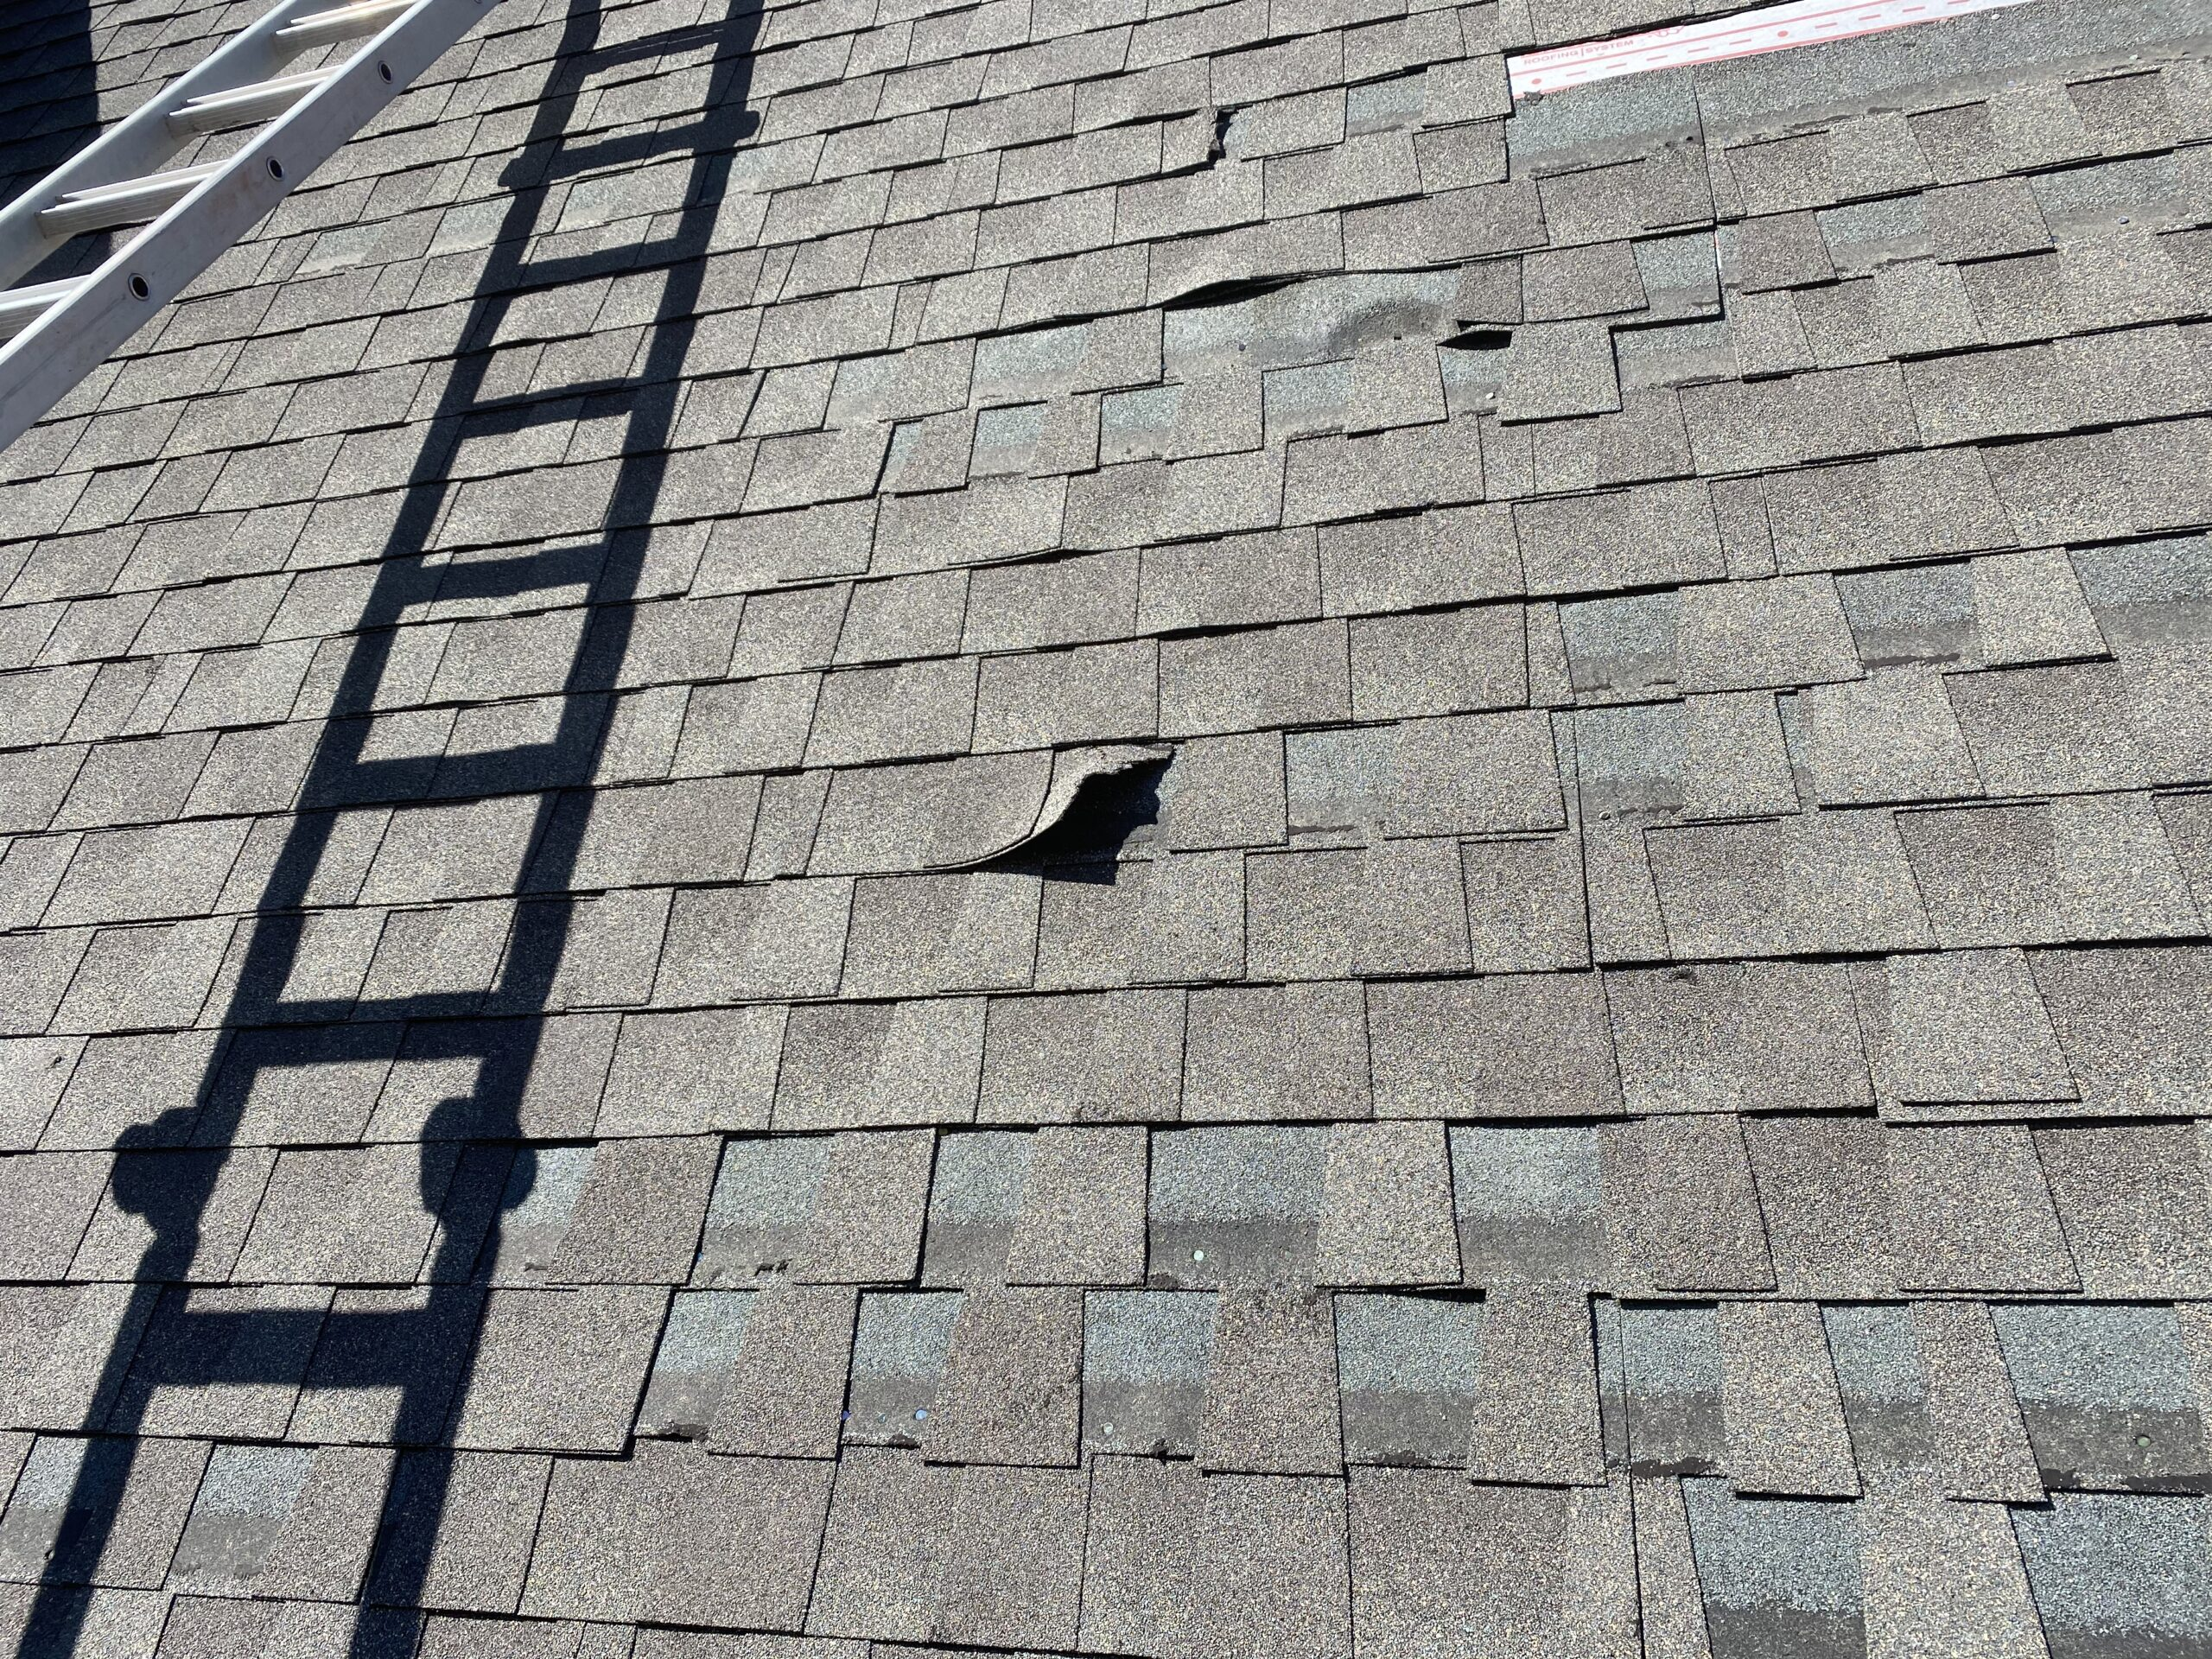 This is a picture of shingles that are bent and torn